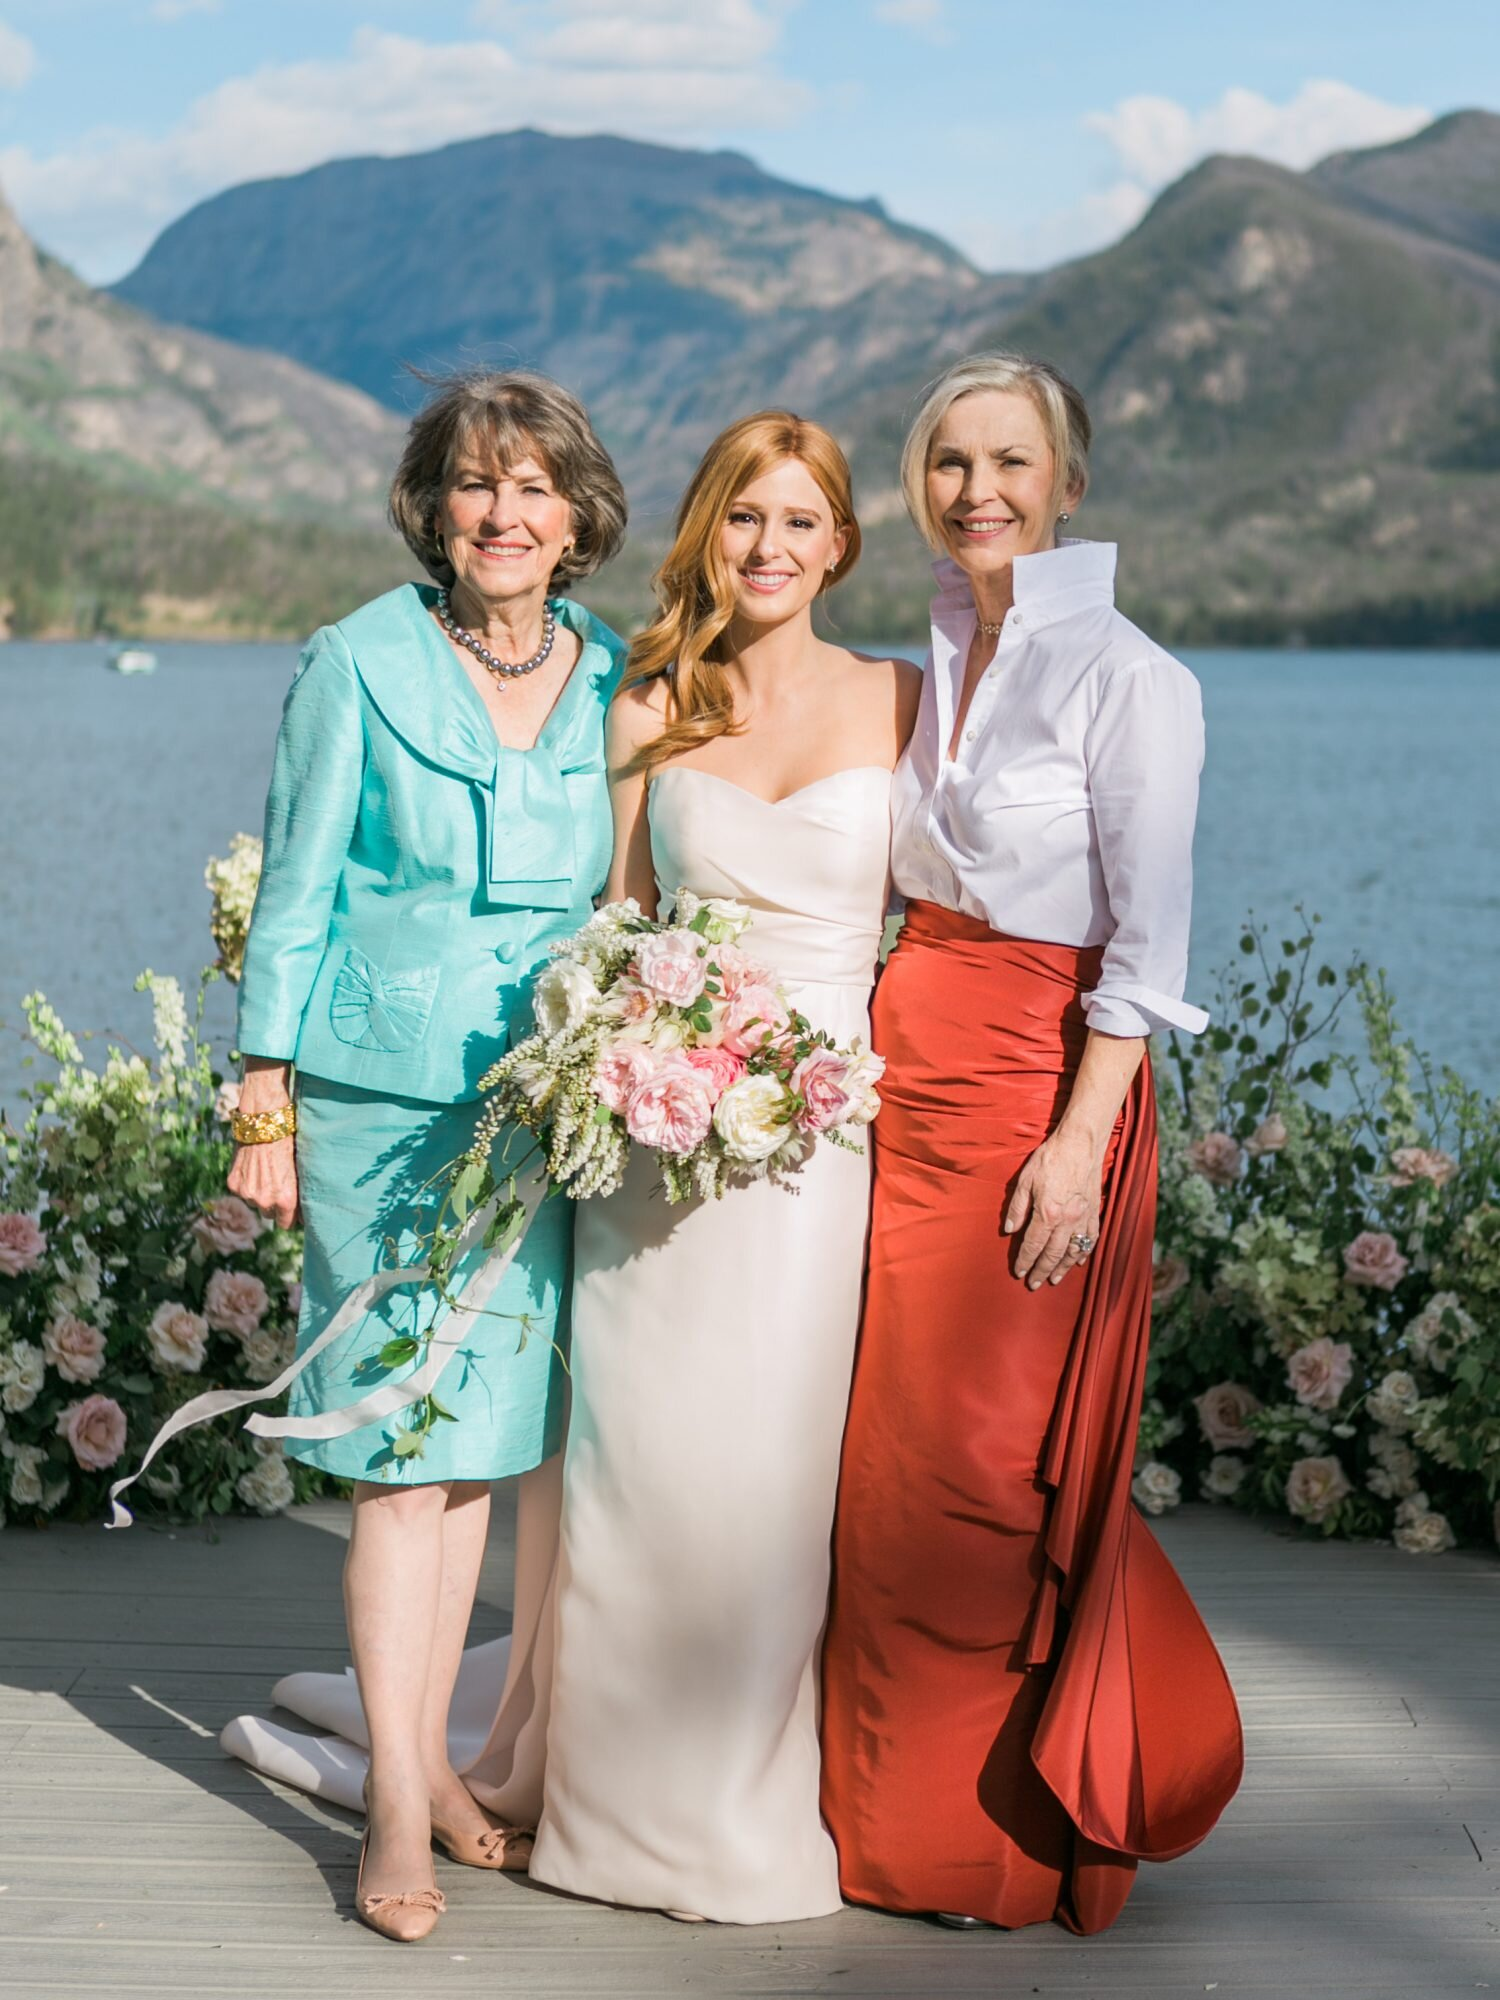 When Should the Mothers of the Bride and Groom Buy Their Dresses ...